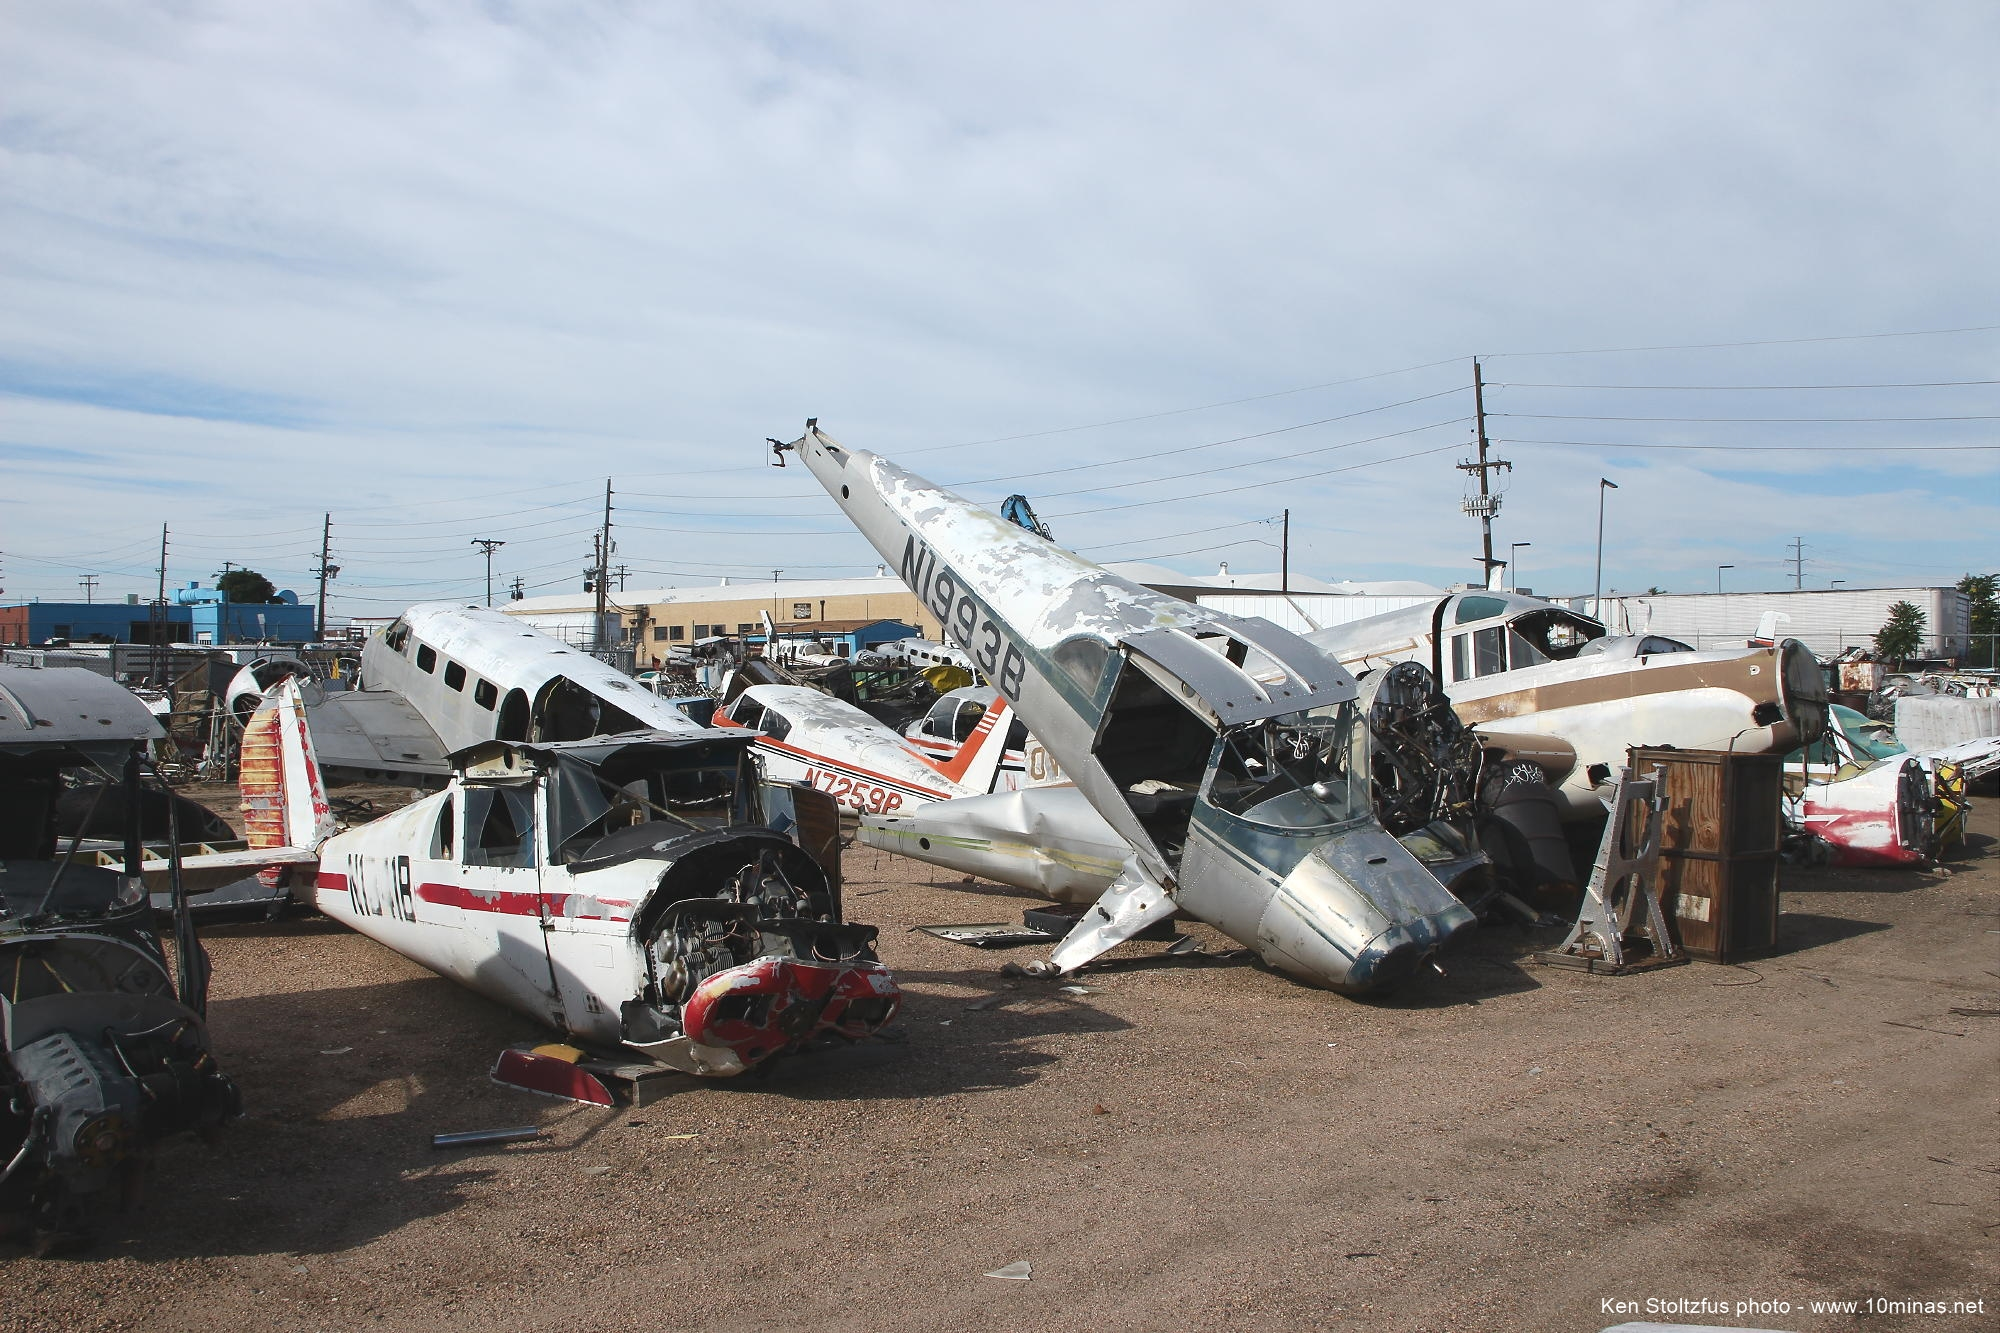 Luscombe_in_aircraft_boneyard